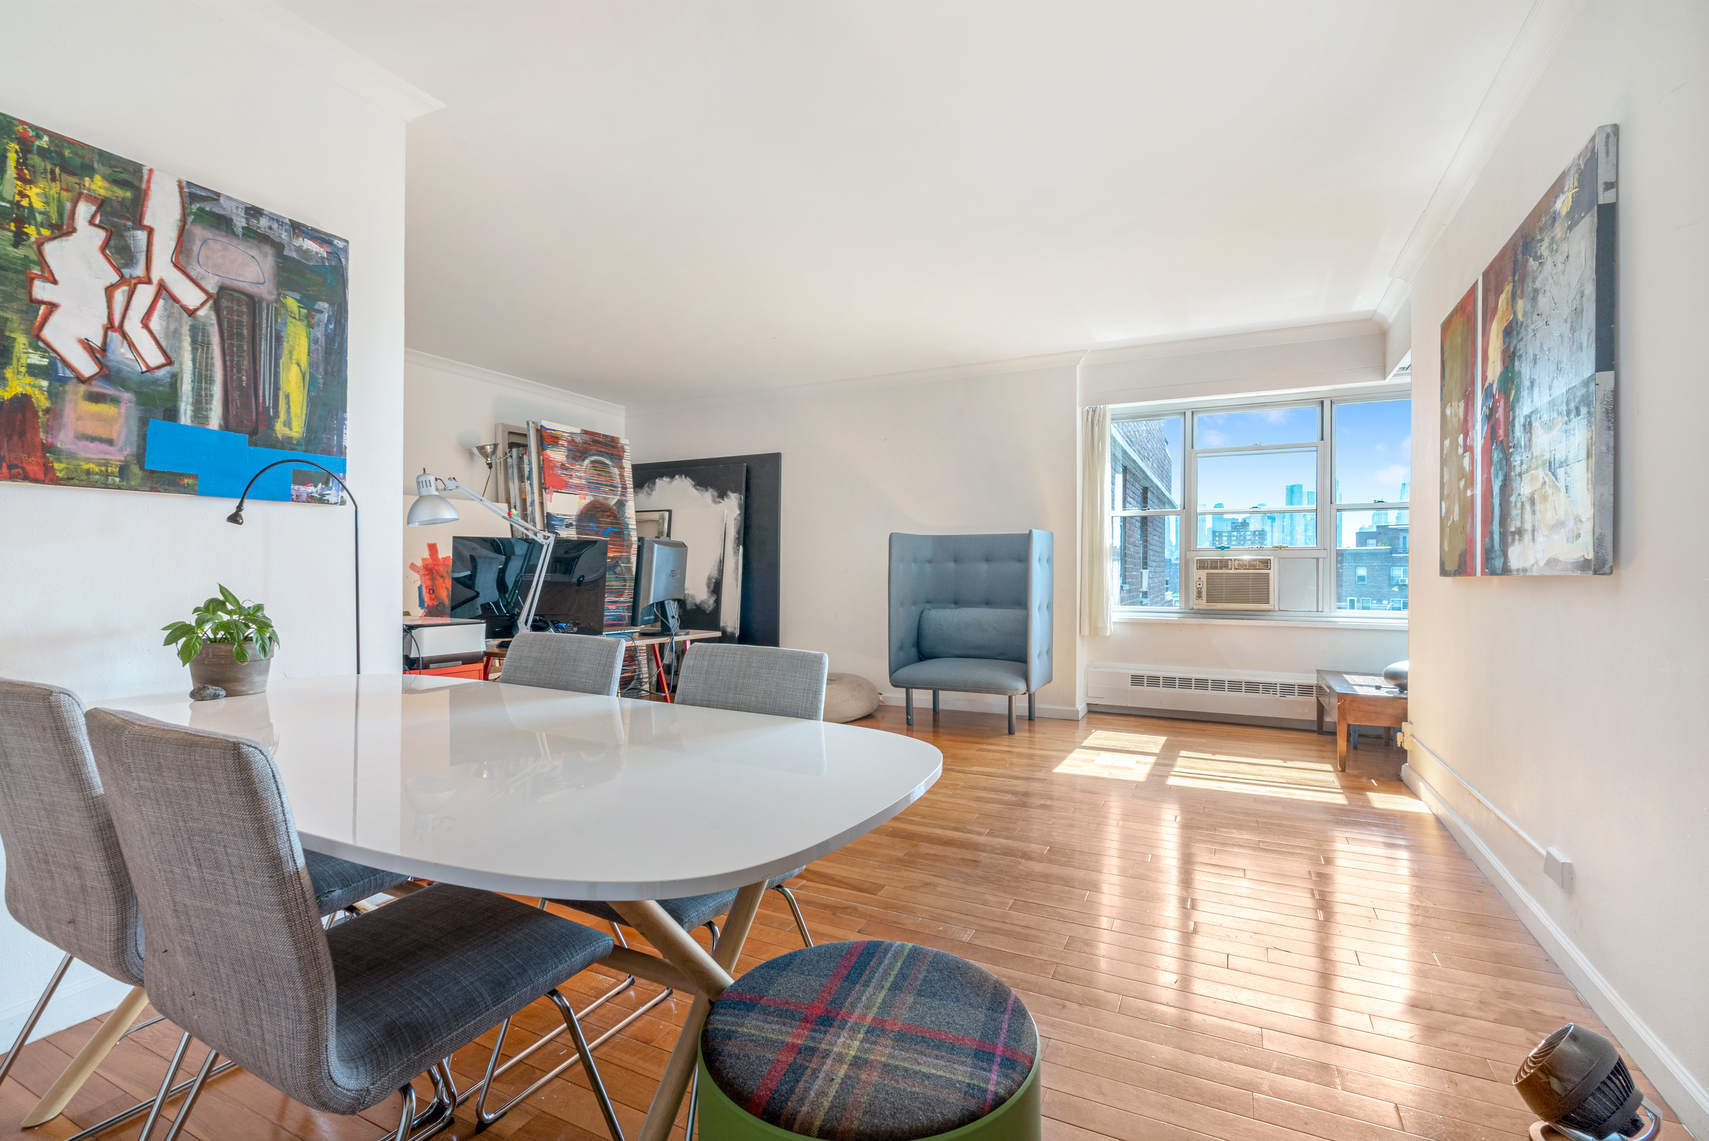 Apartment for sale at 570 Grand Street, Apt H-1301